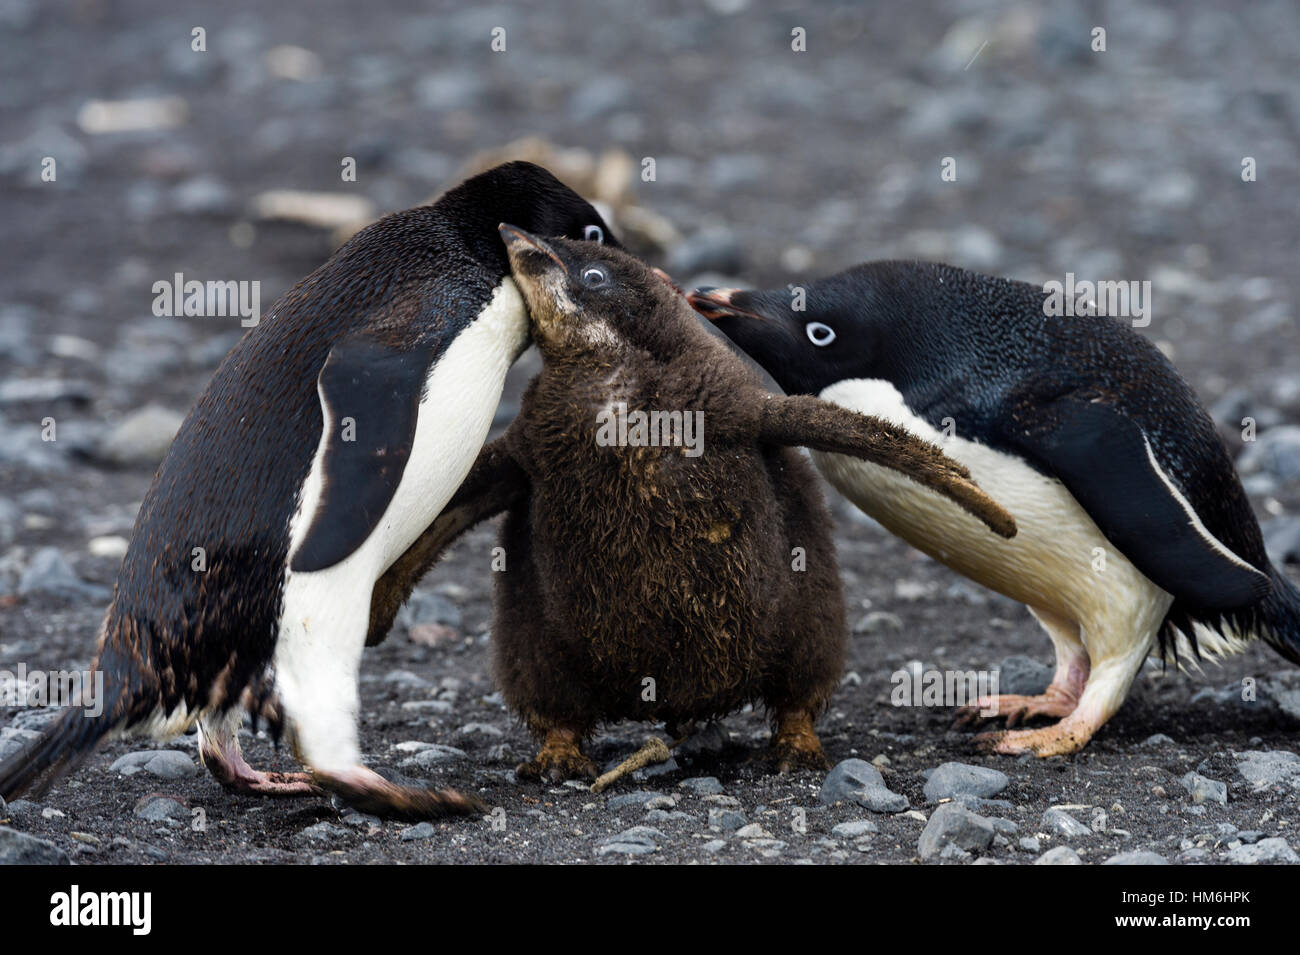 An Adelie Penguin feeding a large fluffy chick by regurgitating food. - Stock Image